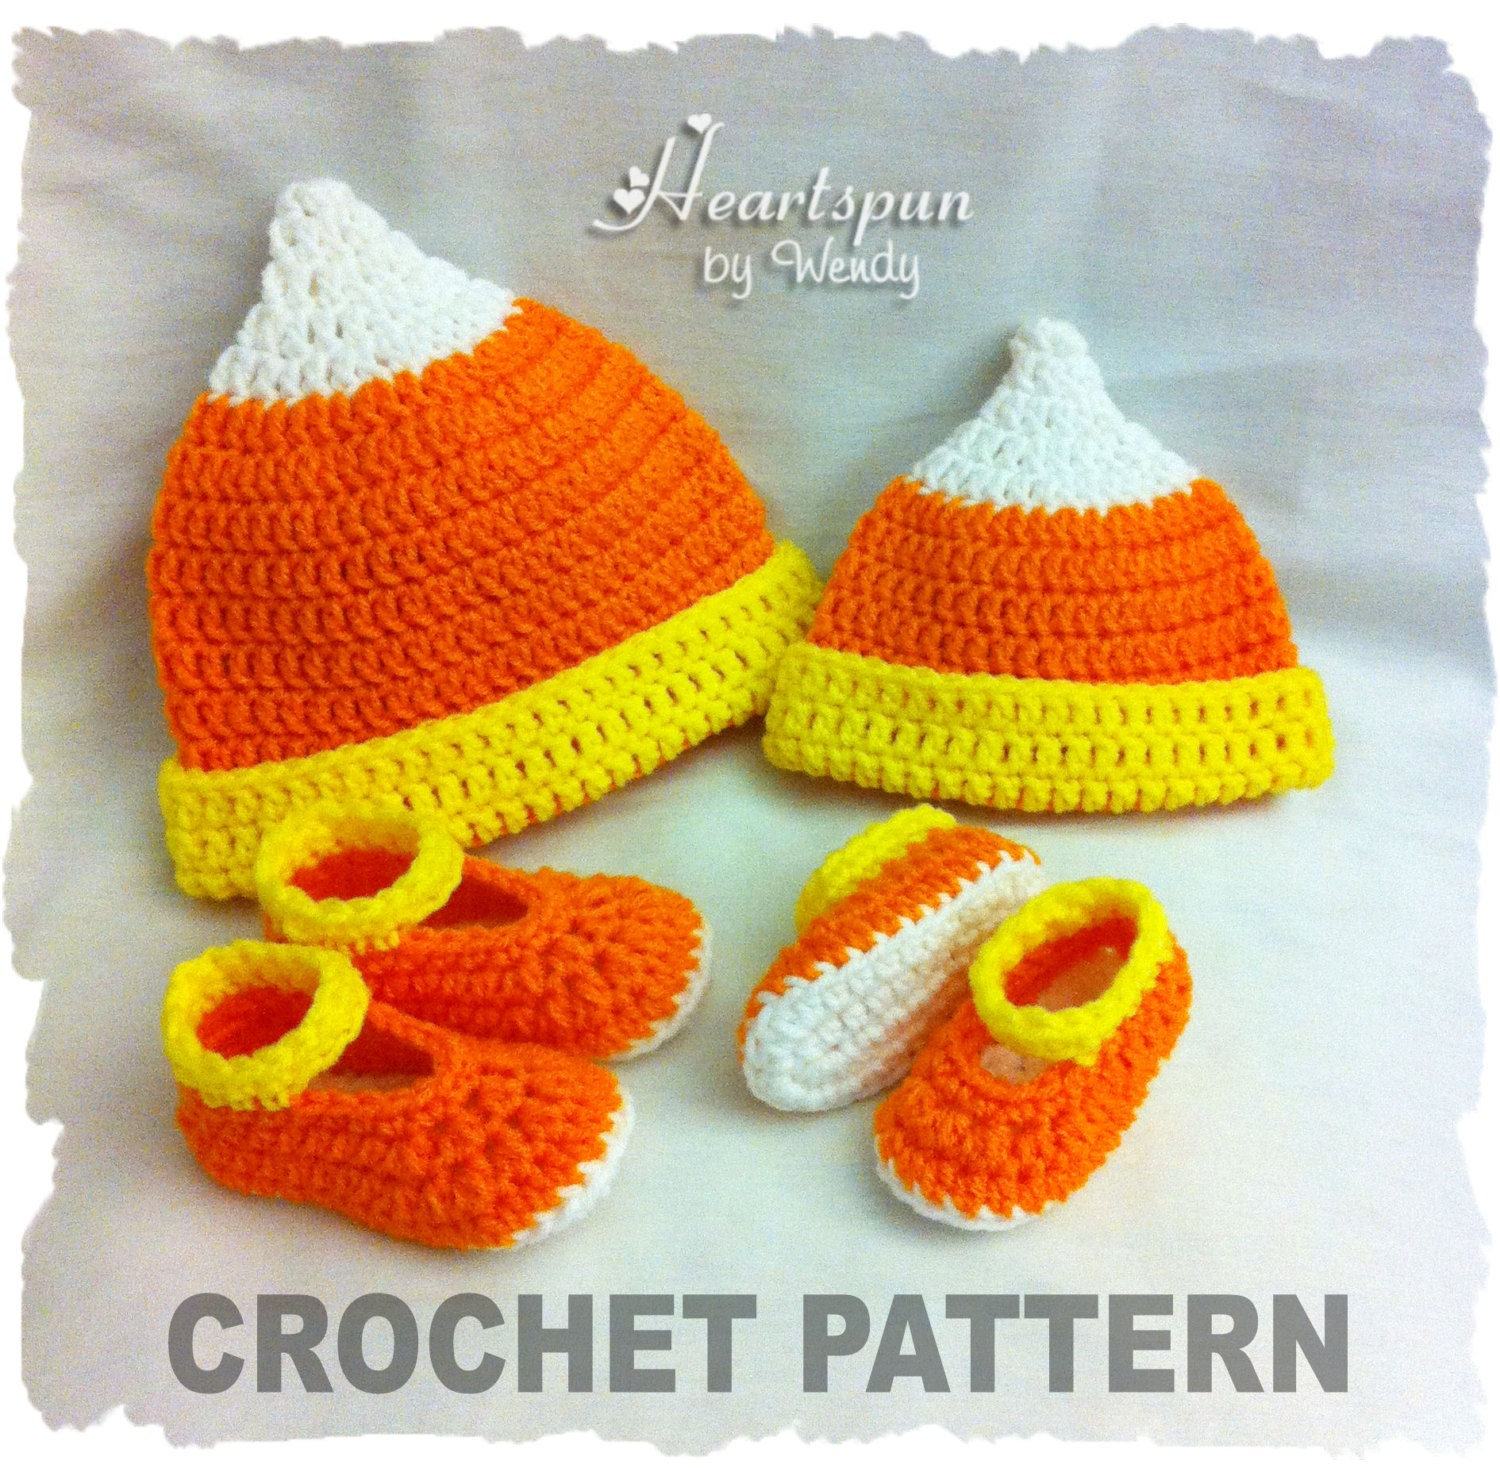 Crochet Pattern To Make This Candy Corn Baby Hat And Shoe Set